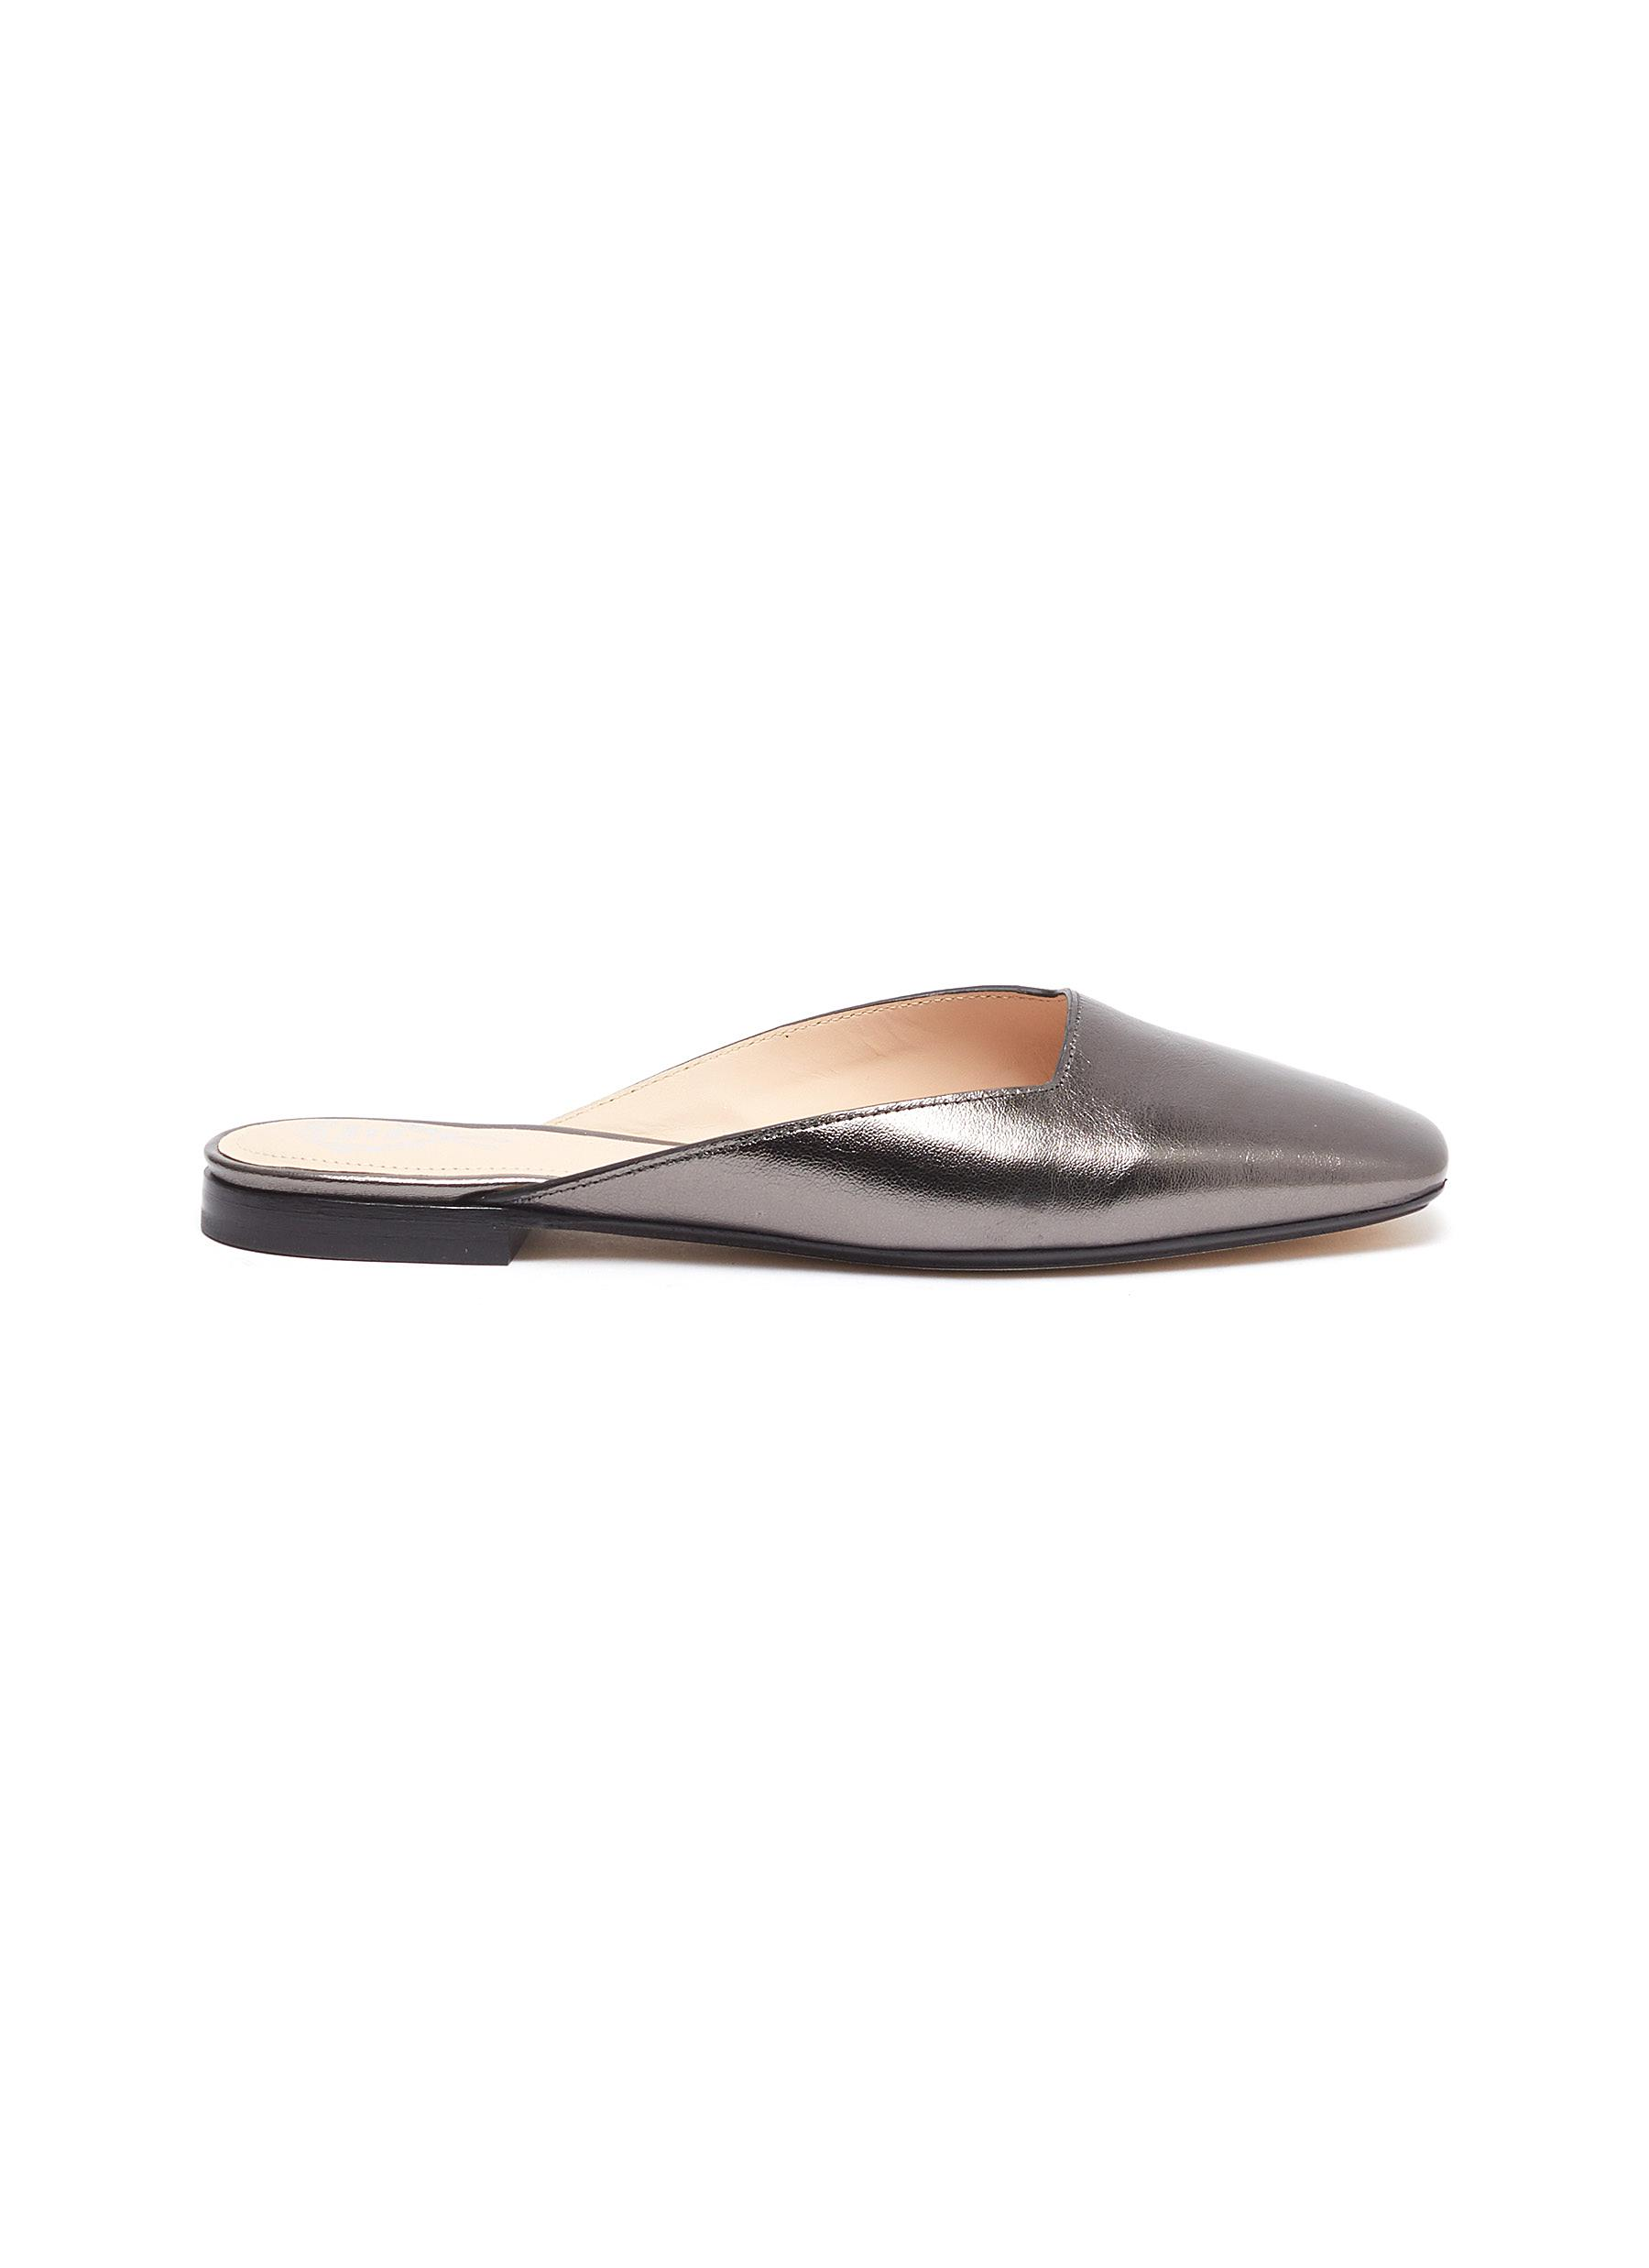 Rodo Flats Metallic leather mules